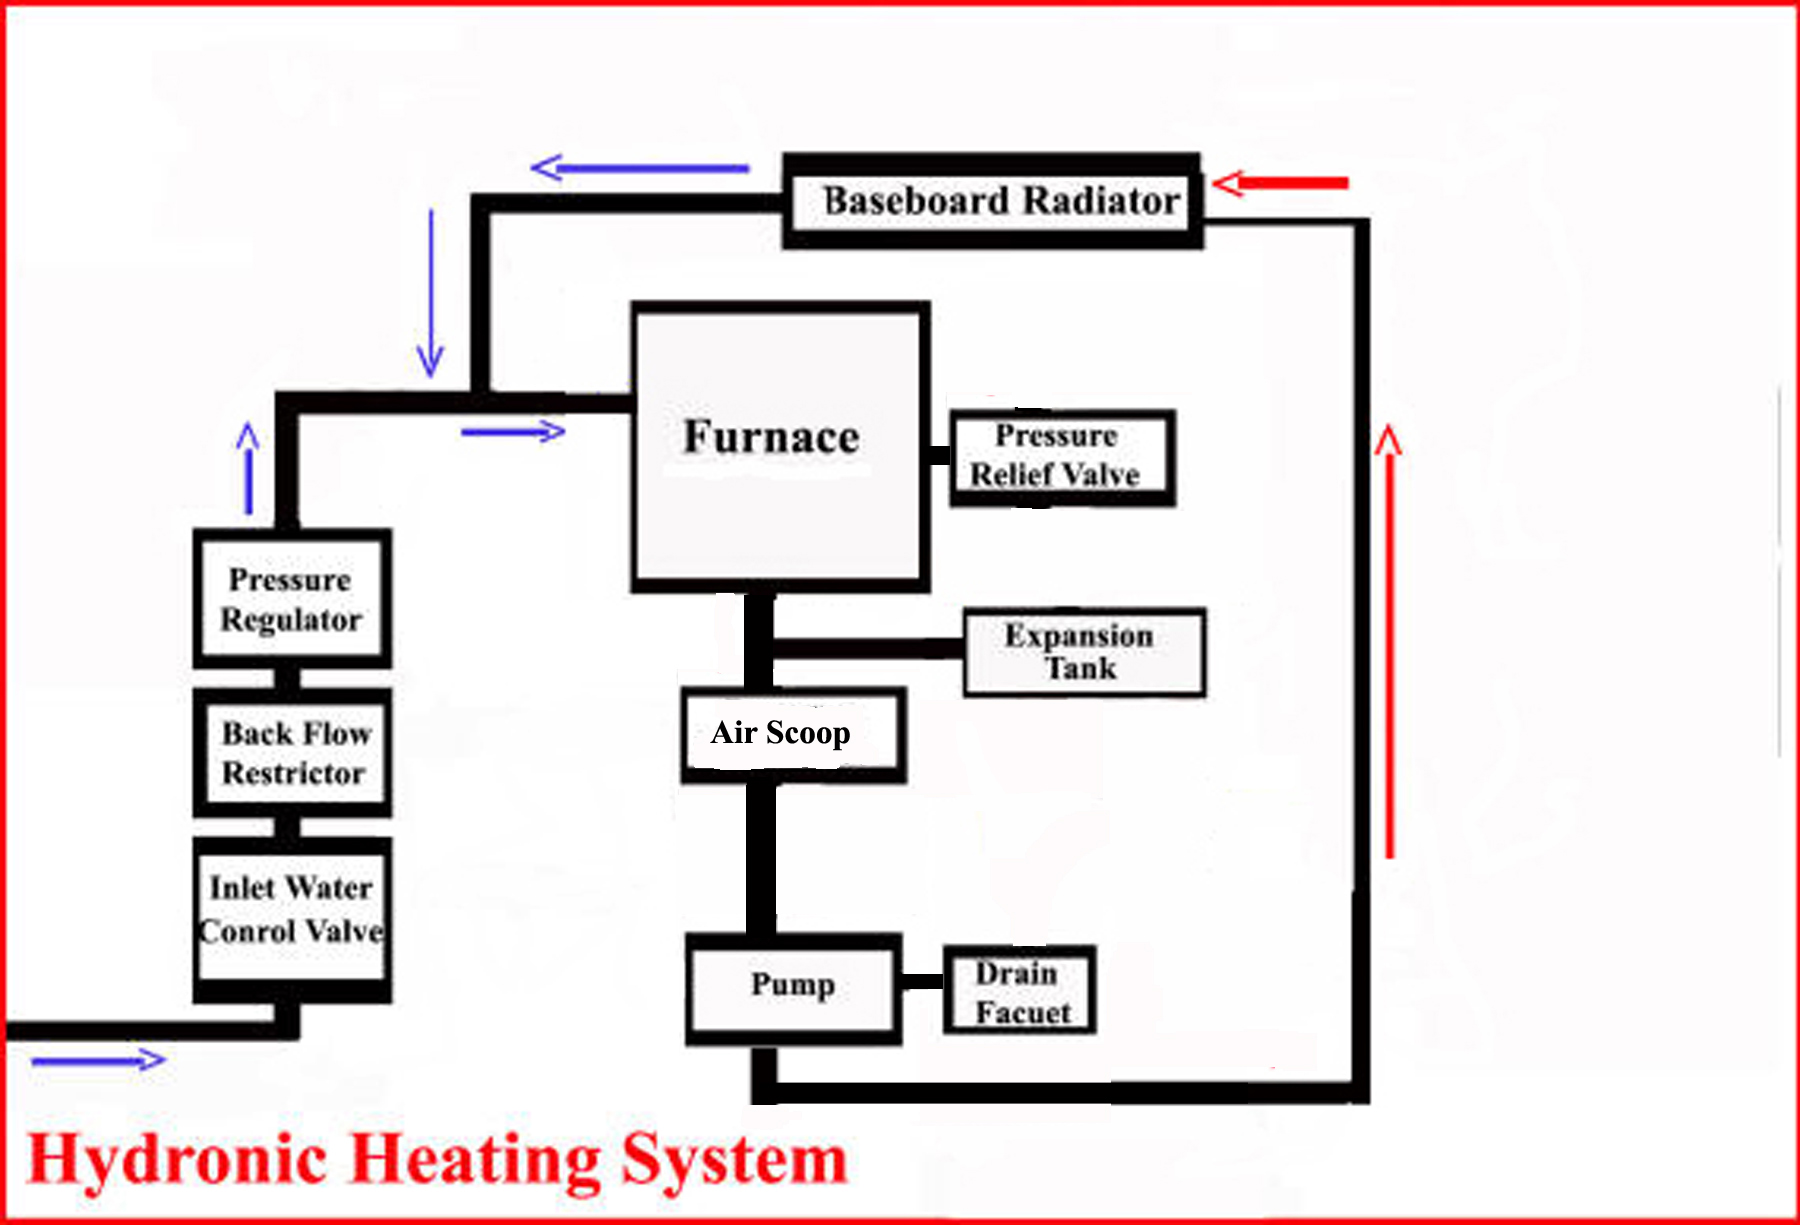 Hydronic Heating System